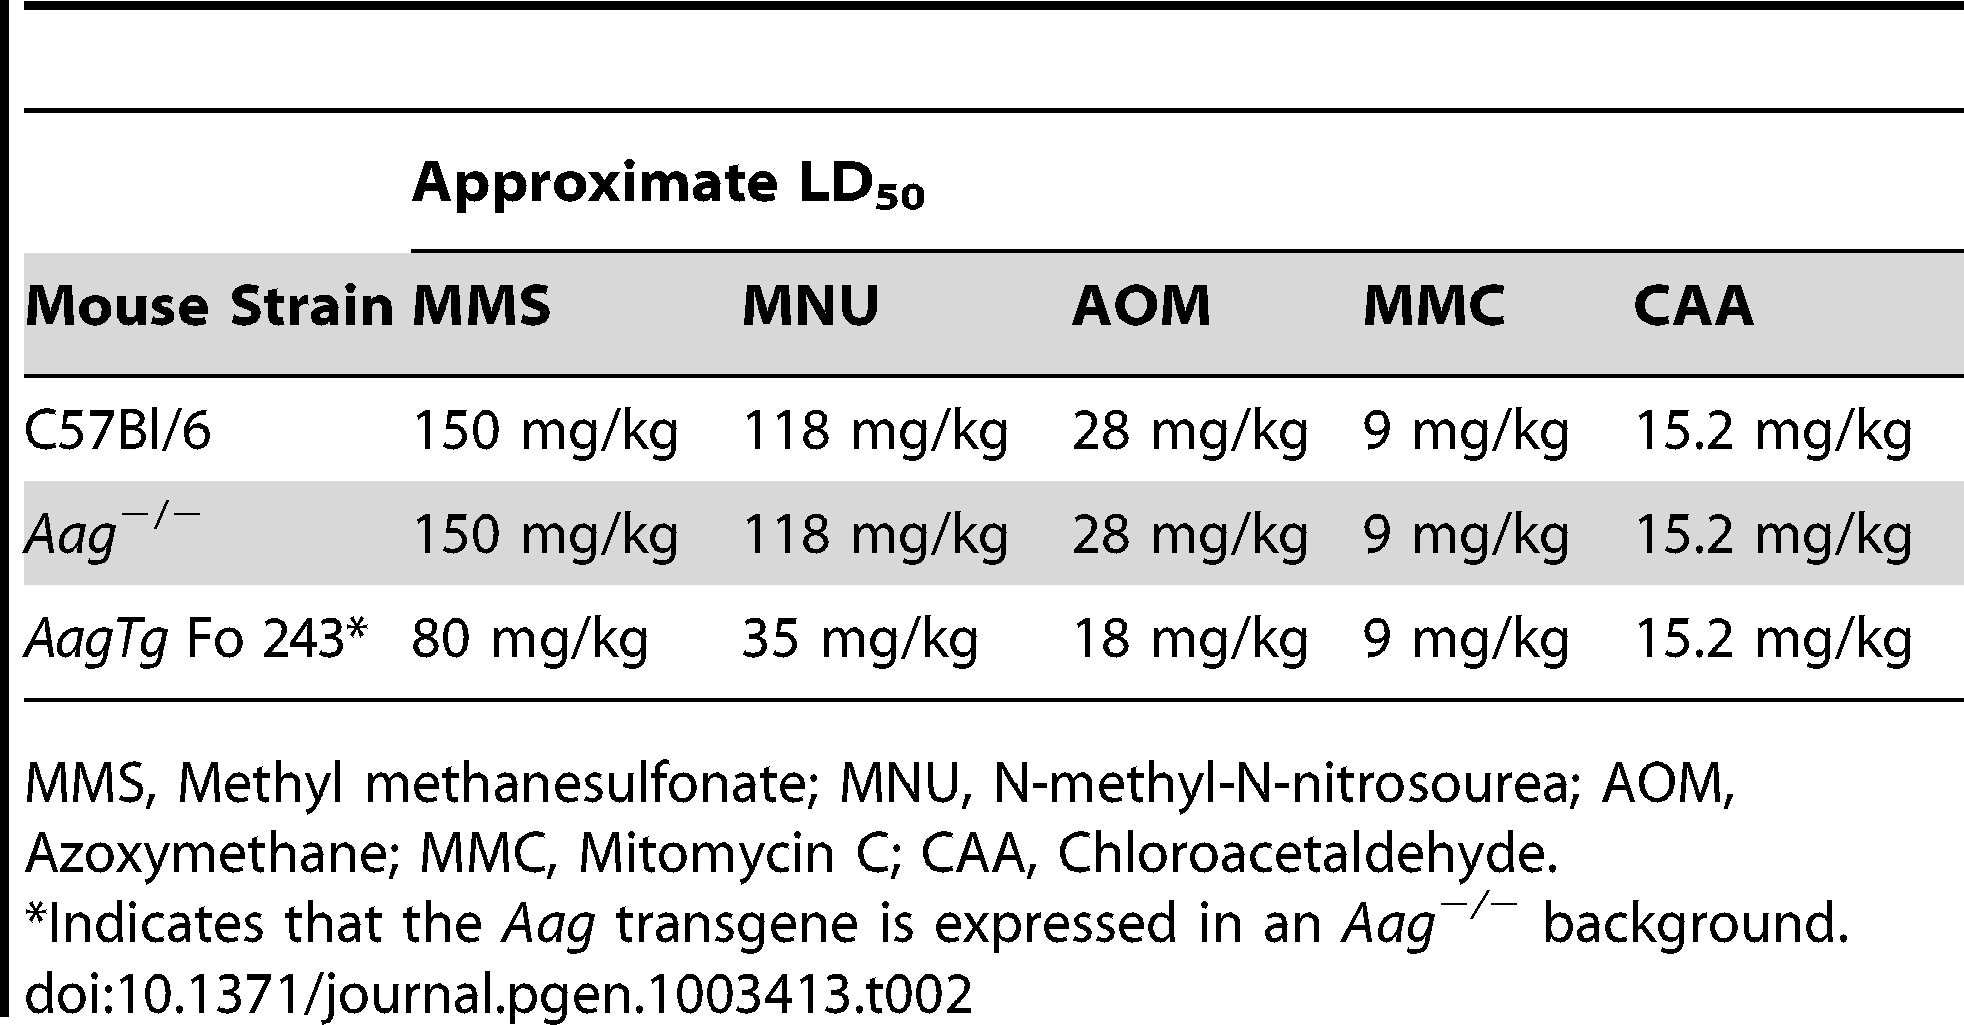 Approximate LD<sub>50</sub> of <i>Aag</i><sup>−/−</sup> and <i>Aag</i> transgenic mice to various genotoxic agents.